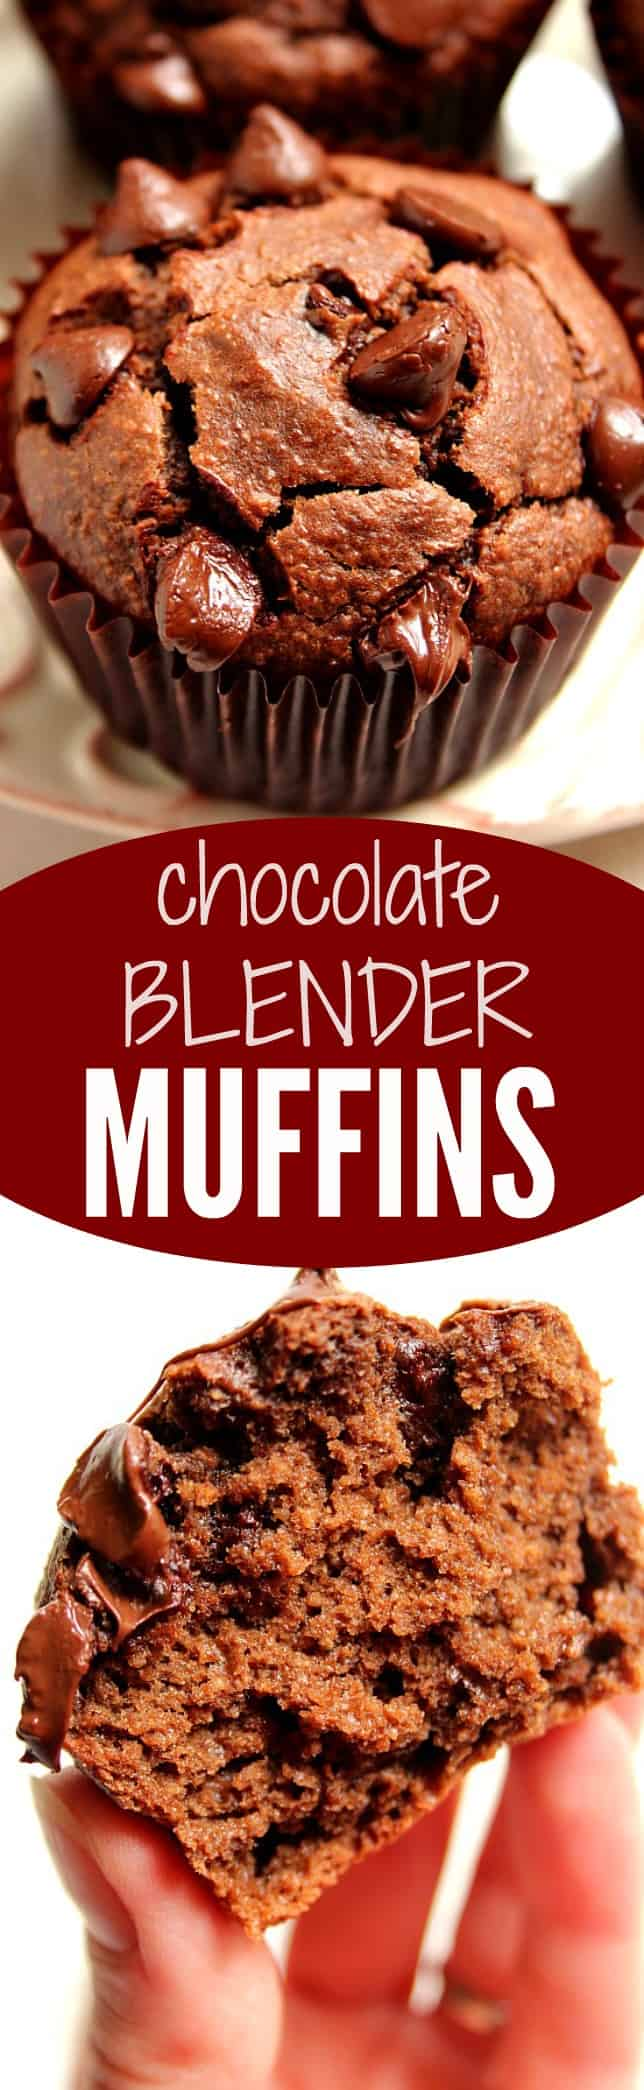 chocolate blender muffins long Chocolate Peanut Butter Blender Muffins Recipe